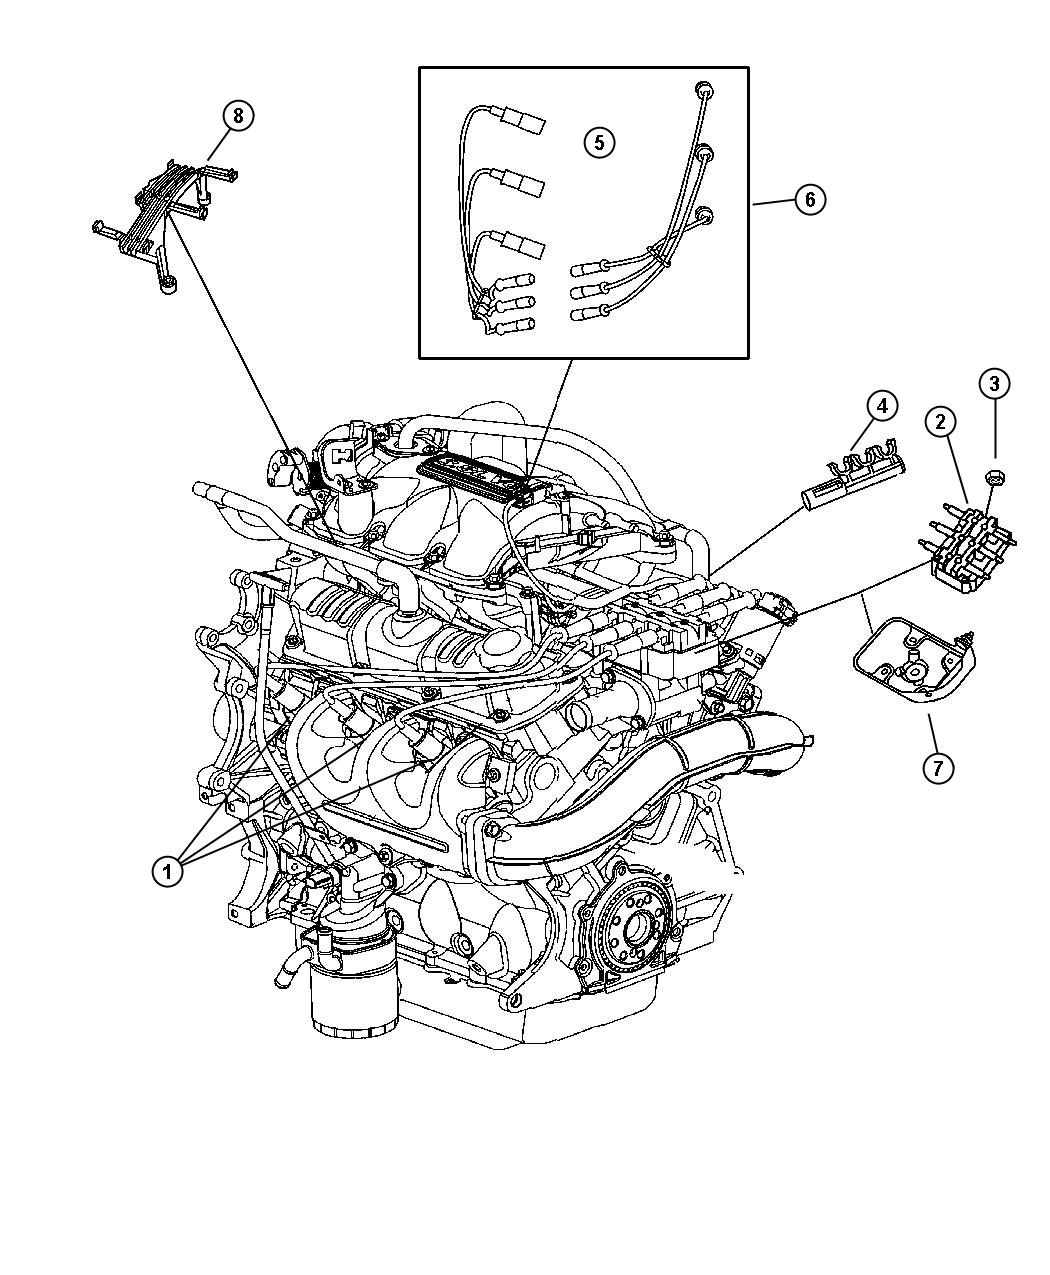 hight resolution of  2010 chrysler town and country parts diagram 2009 chrysler town country cable ignition